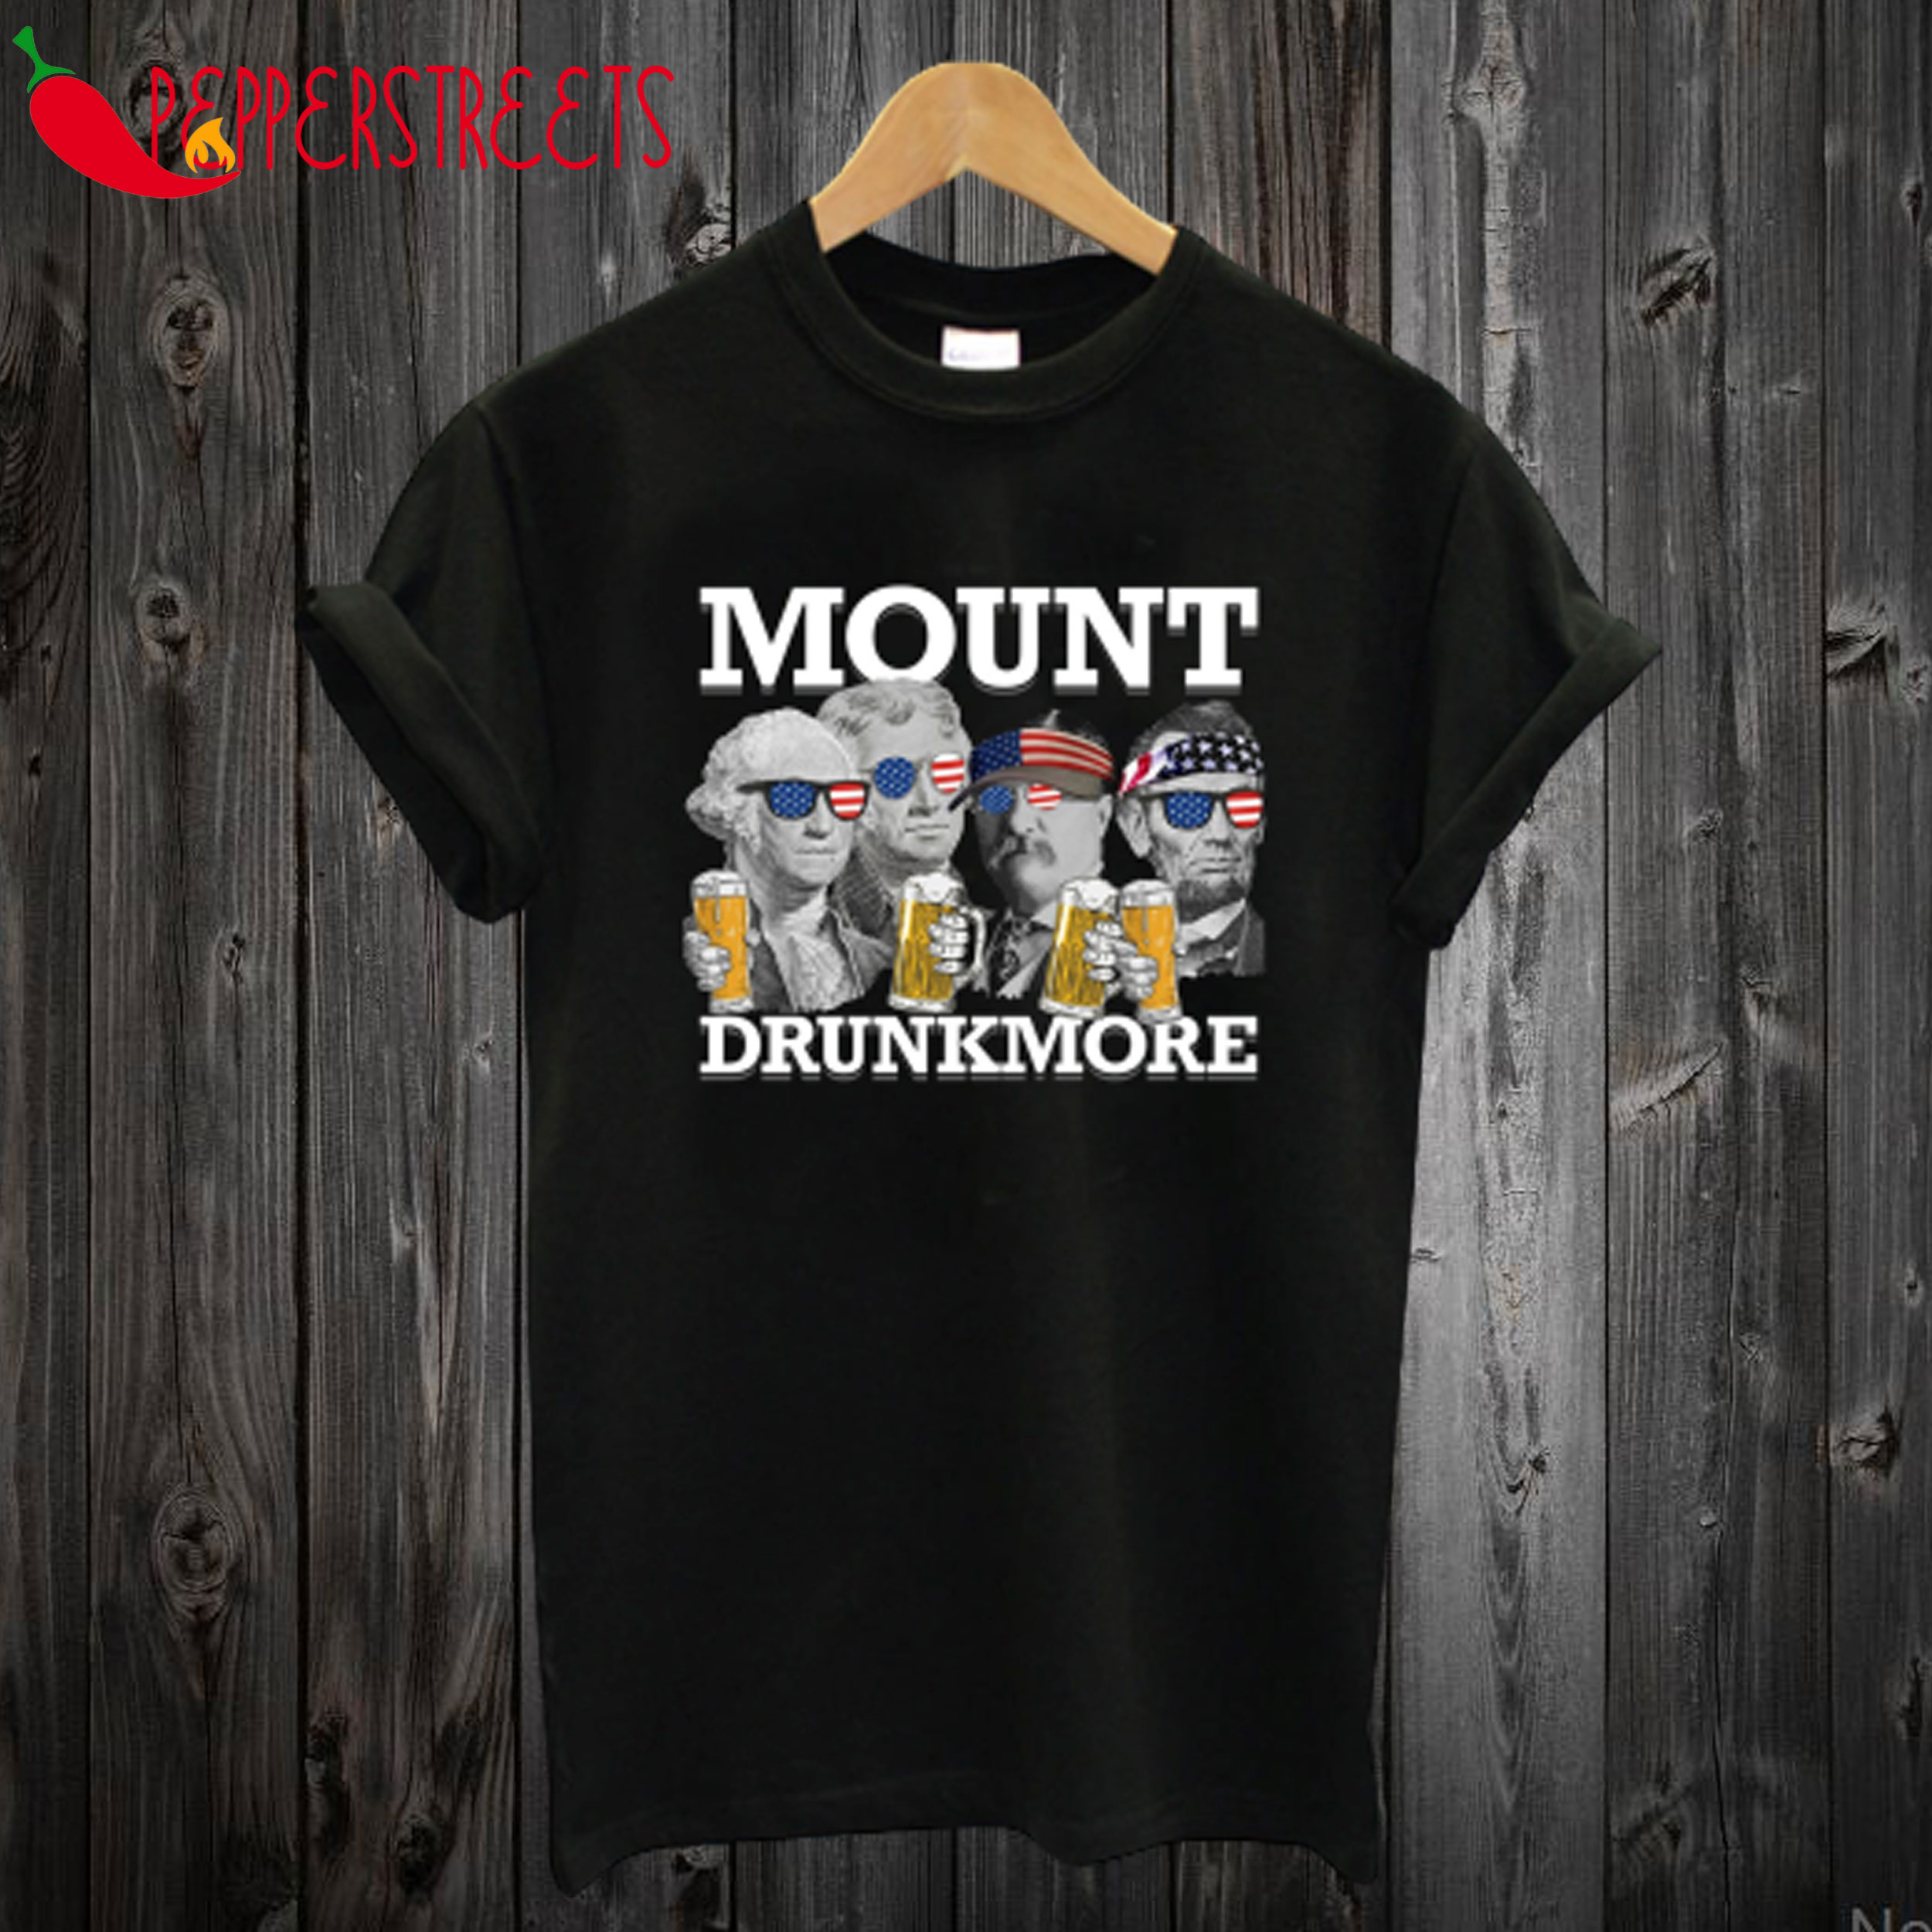 USA President 4th of July Mount Drunkmore Mount Rushmore T-Shirt